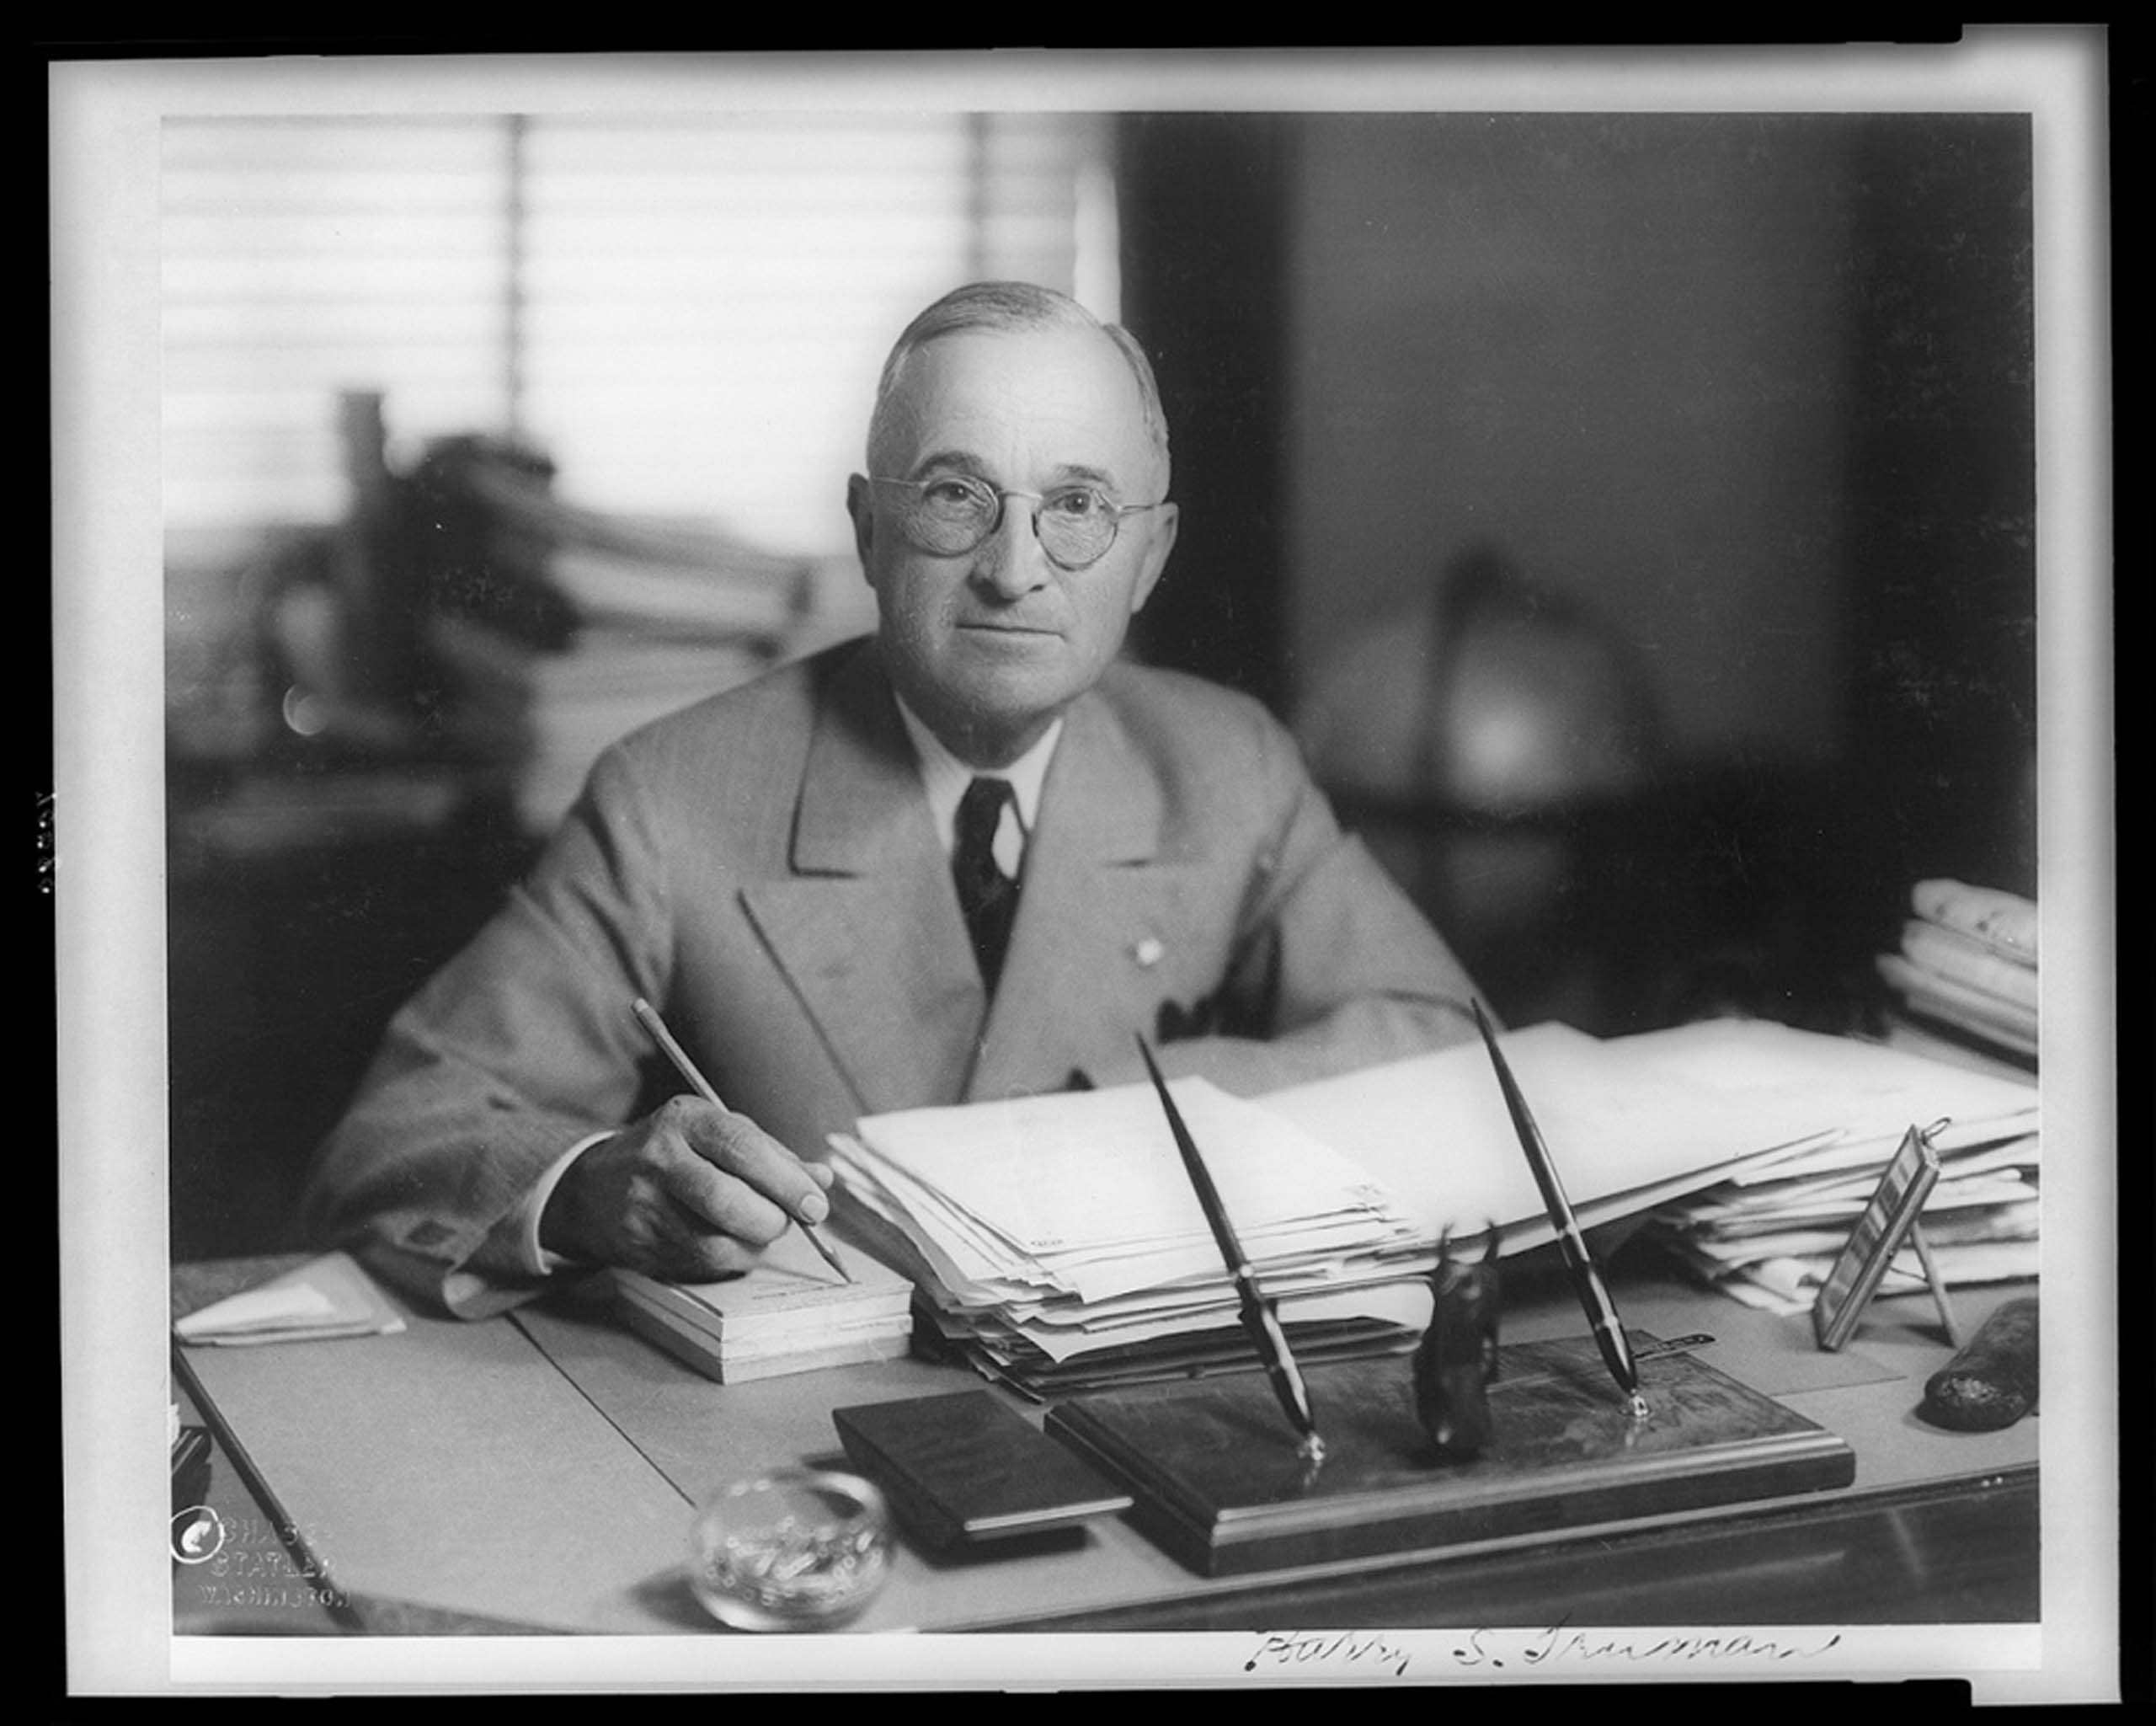 c. April 19, 1945. Harry Truman, half-length portrait, seated at desk, facing front, holding pencil.